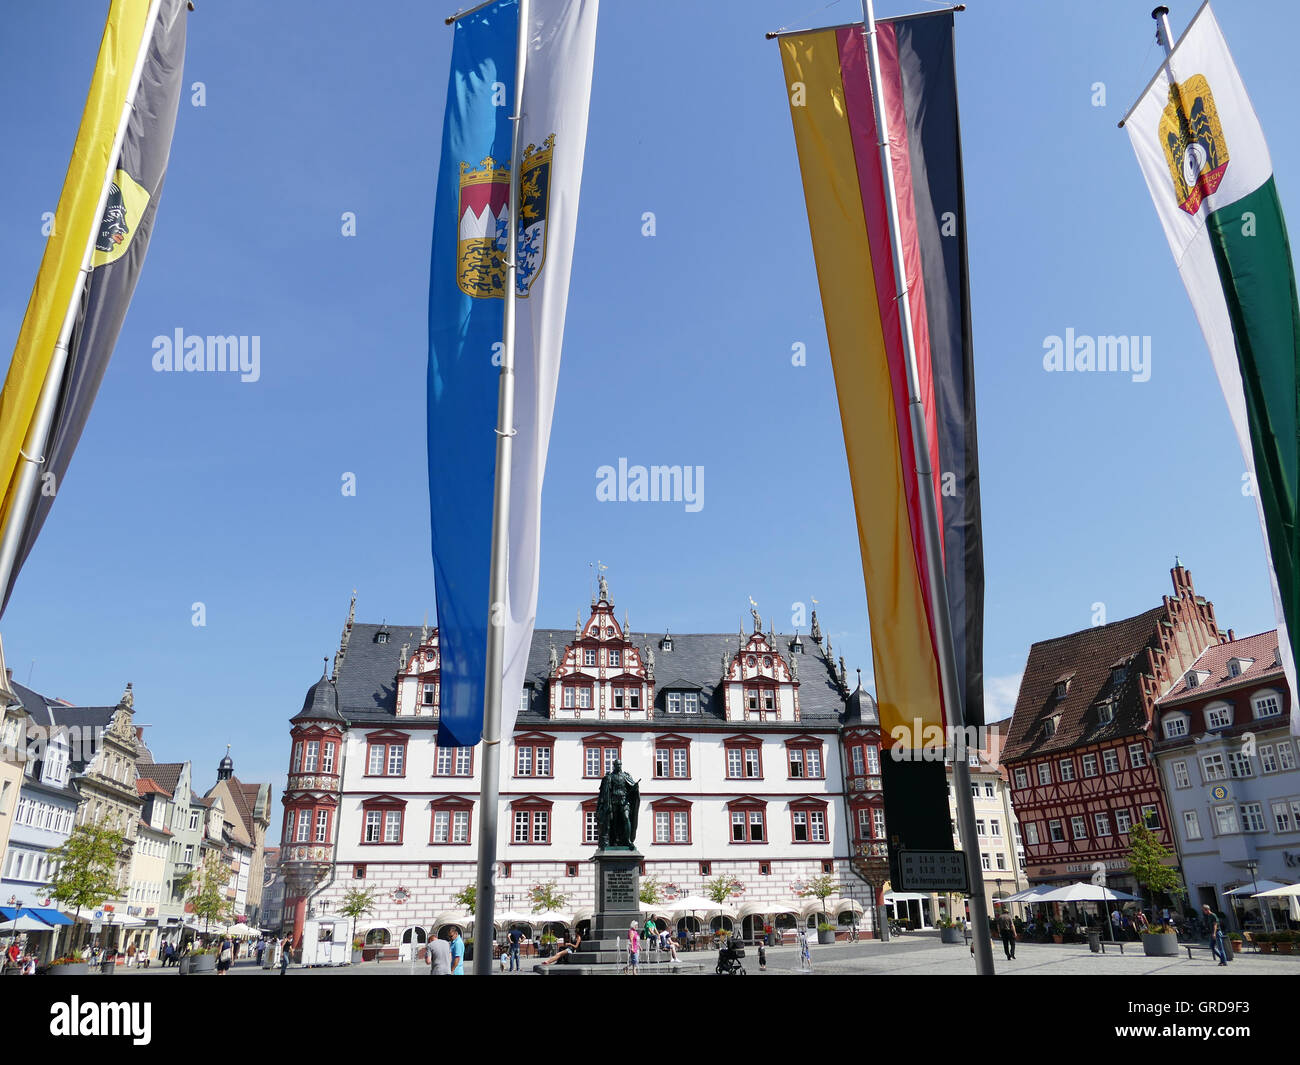 Coburg, Marketplace Flagged, Upper Franconia Stock Photo